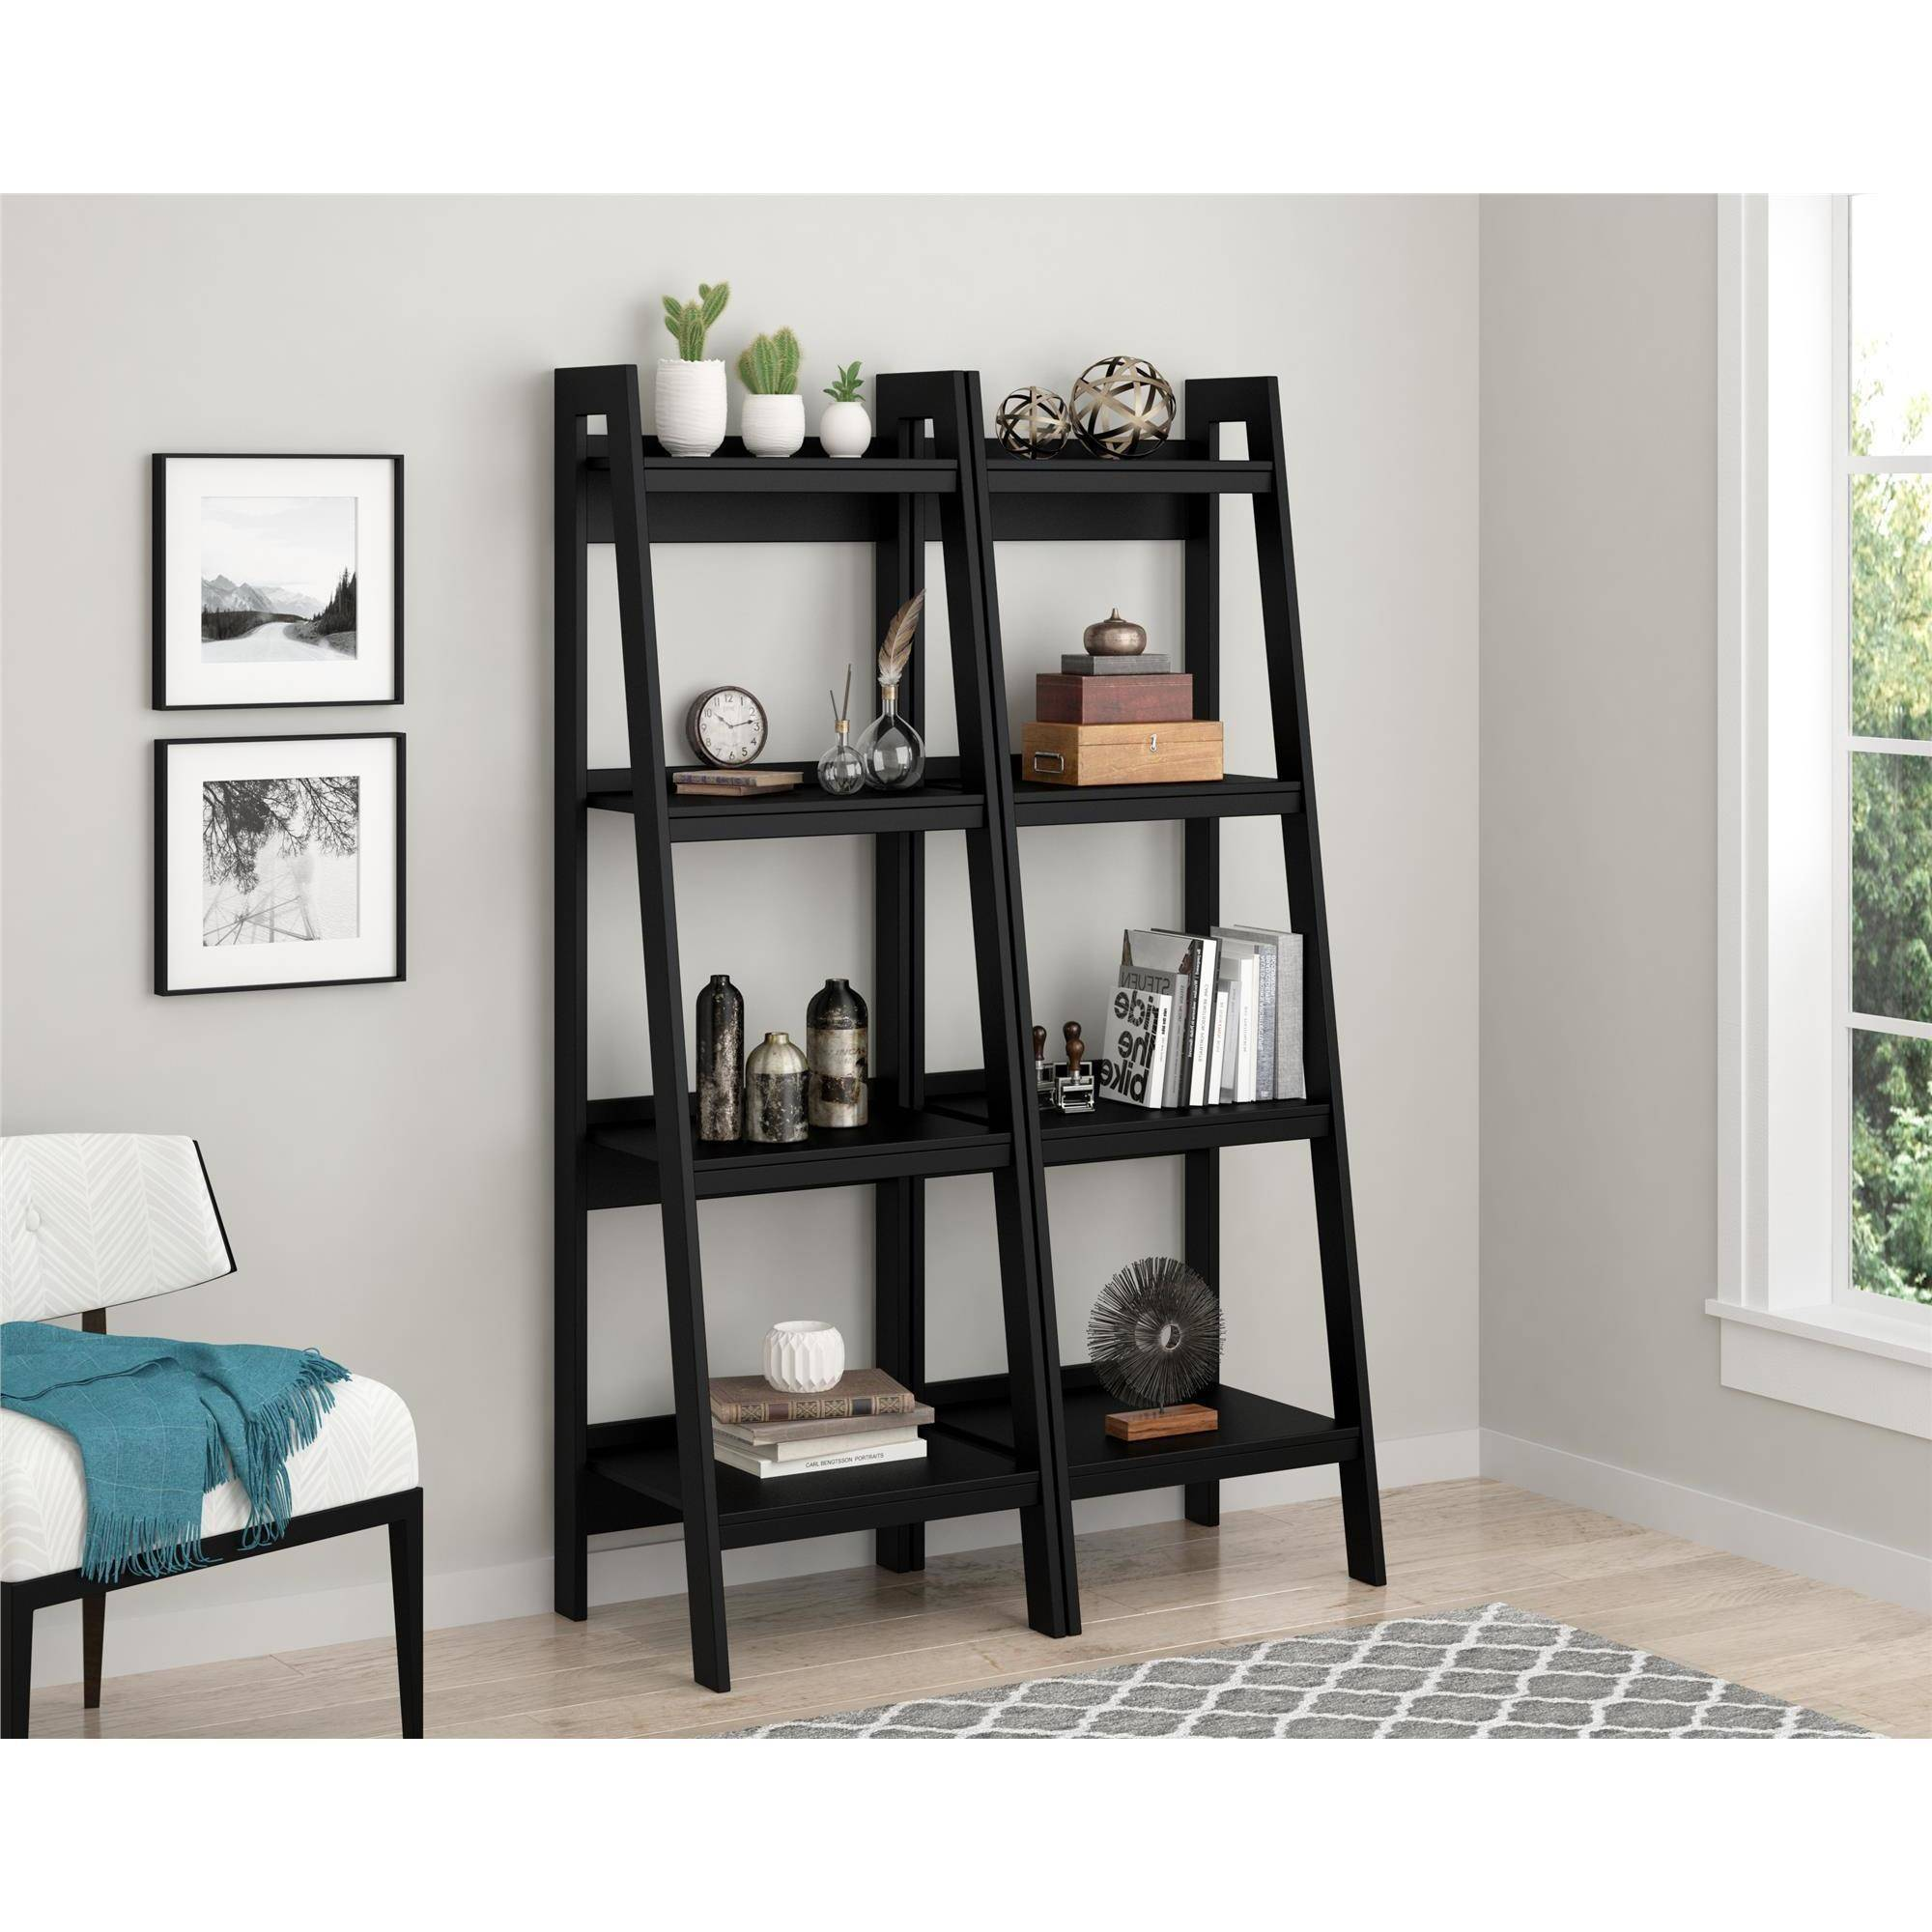 Altra Furniture Ladder Bookcase in Black (Set of 2) by Generic